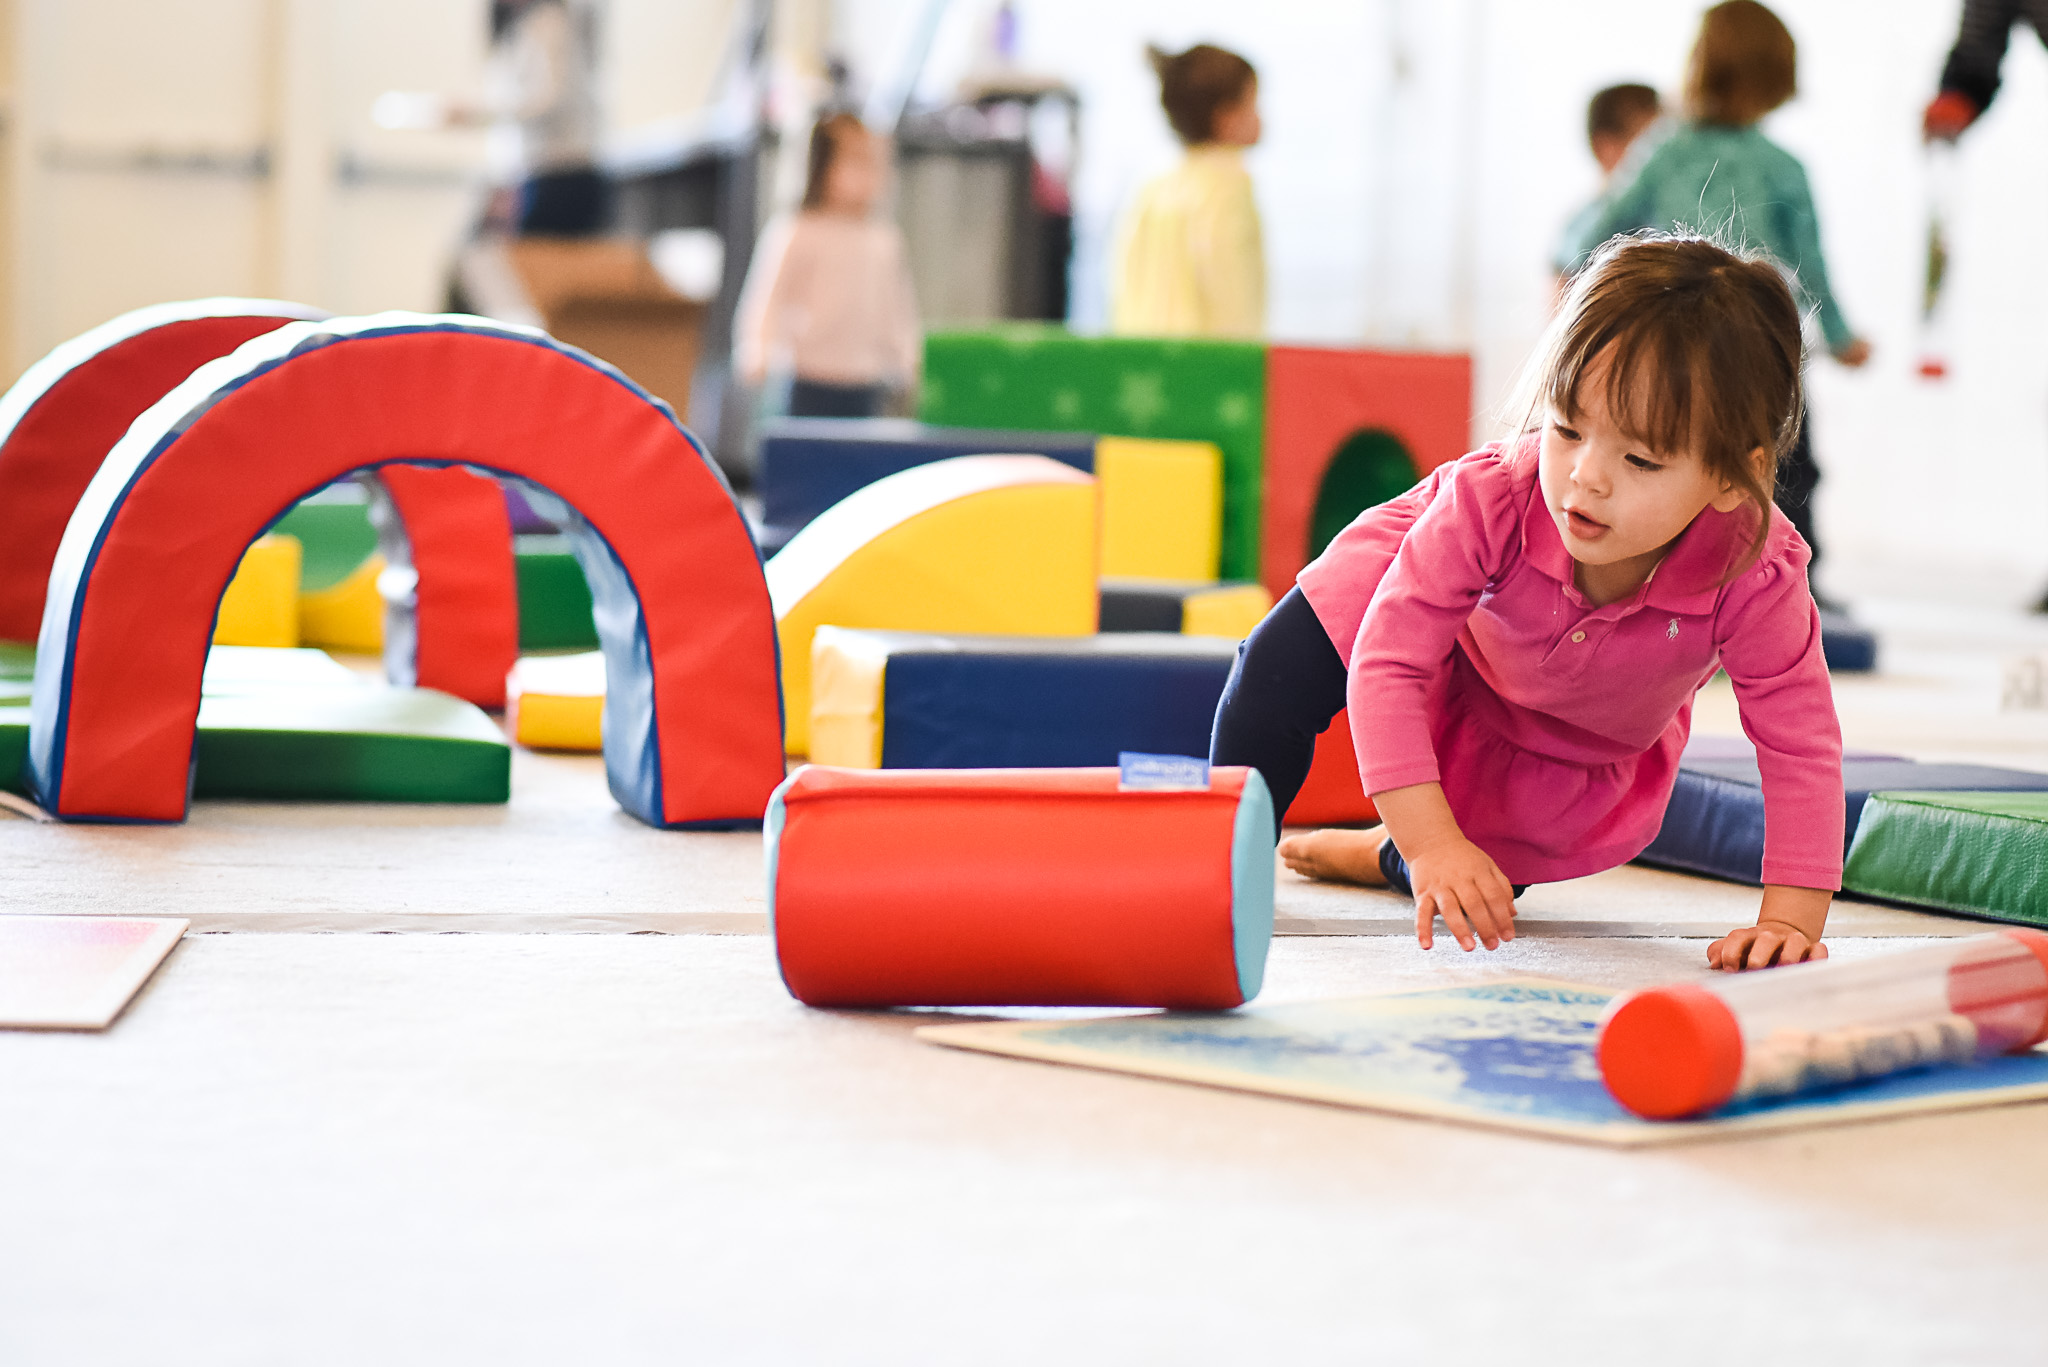 A Pop-up Play Experience at Stanley Market - Usually Monday and Thursday 9:30-11:30 | Just $10 per child; $5 for siblings